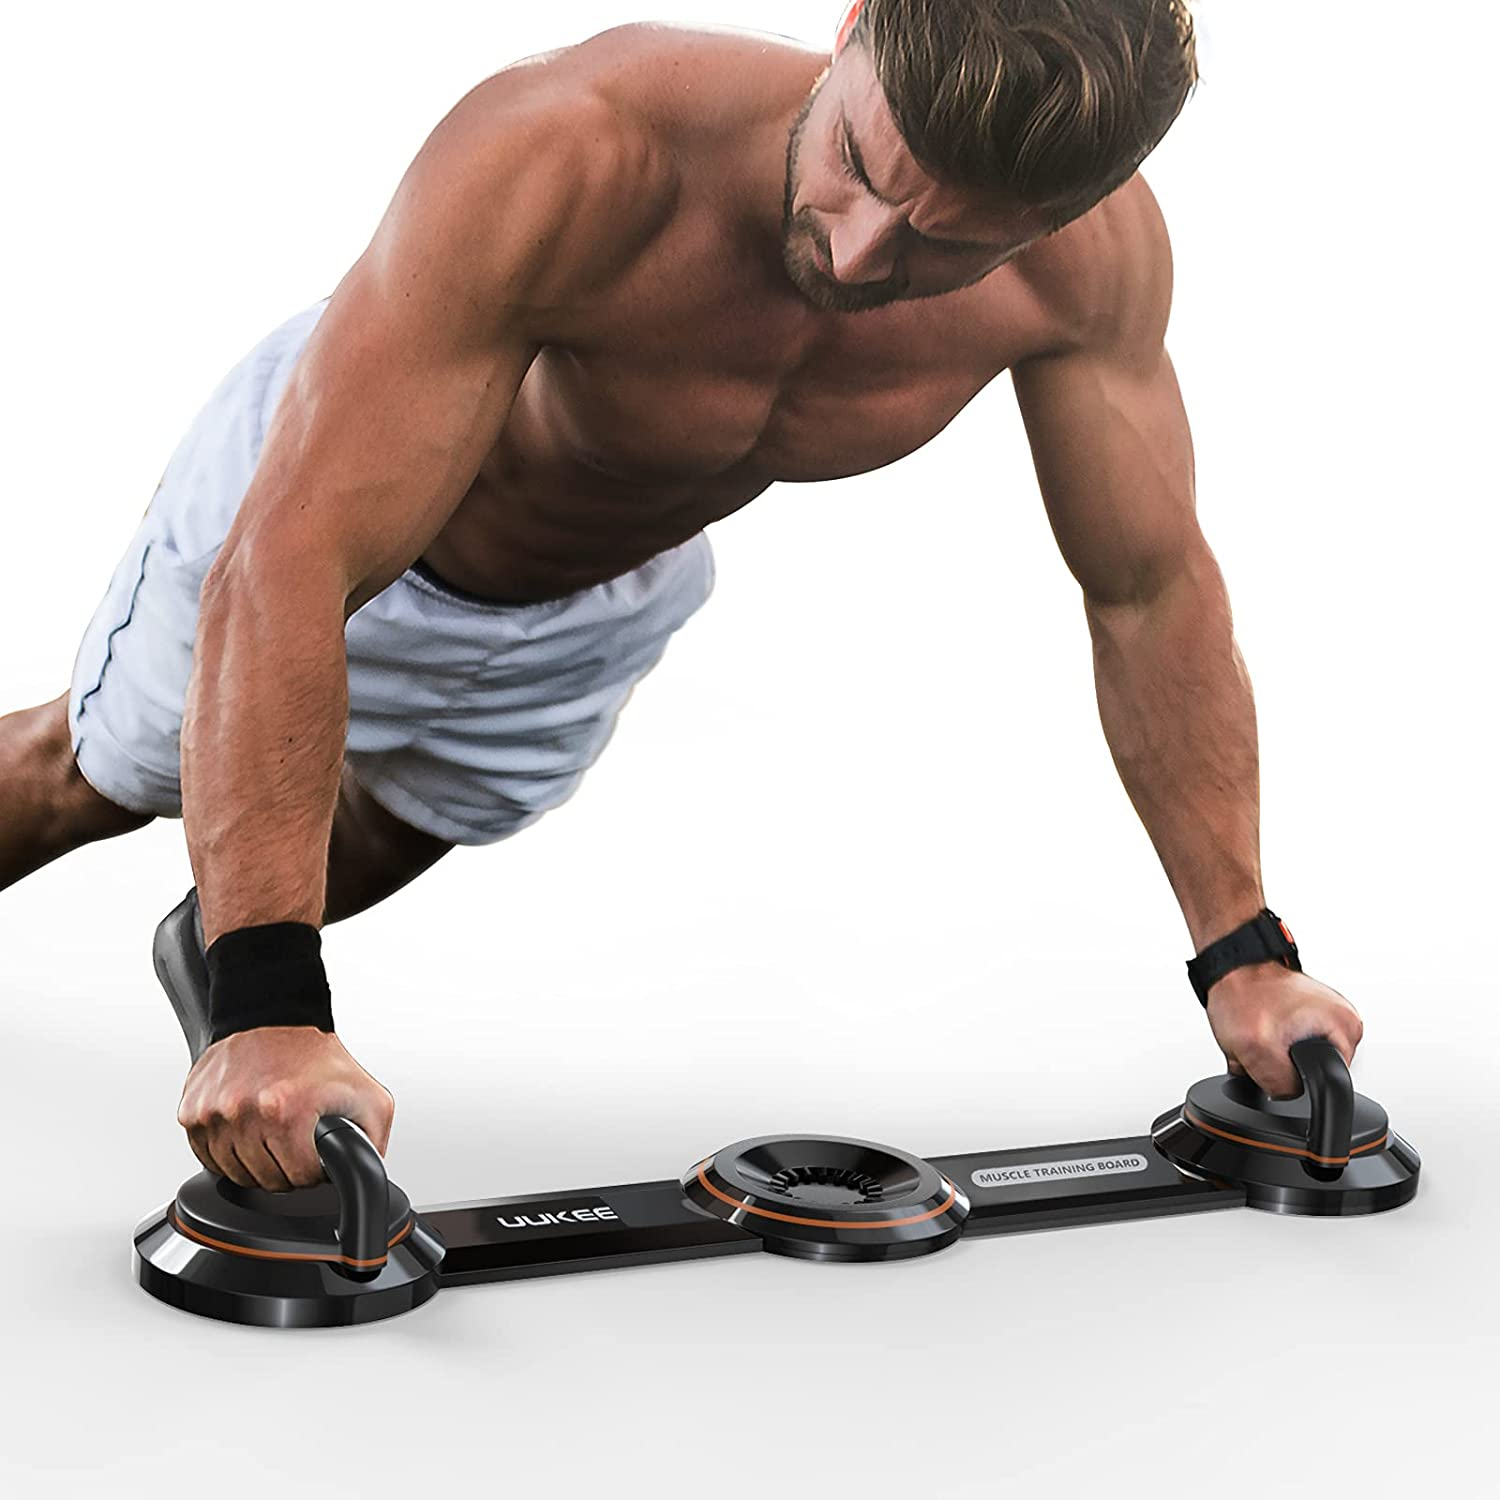 UUKEE Push Up Bar Upgraded 1 Strength Board Max 88% OFF for All items in the store Training